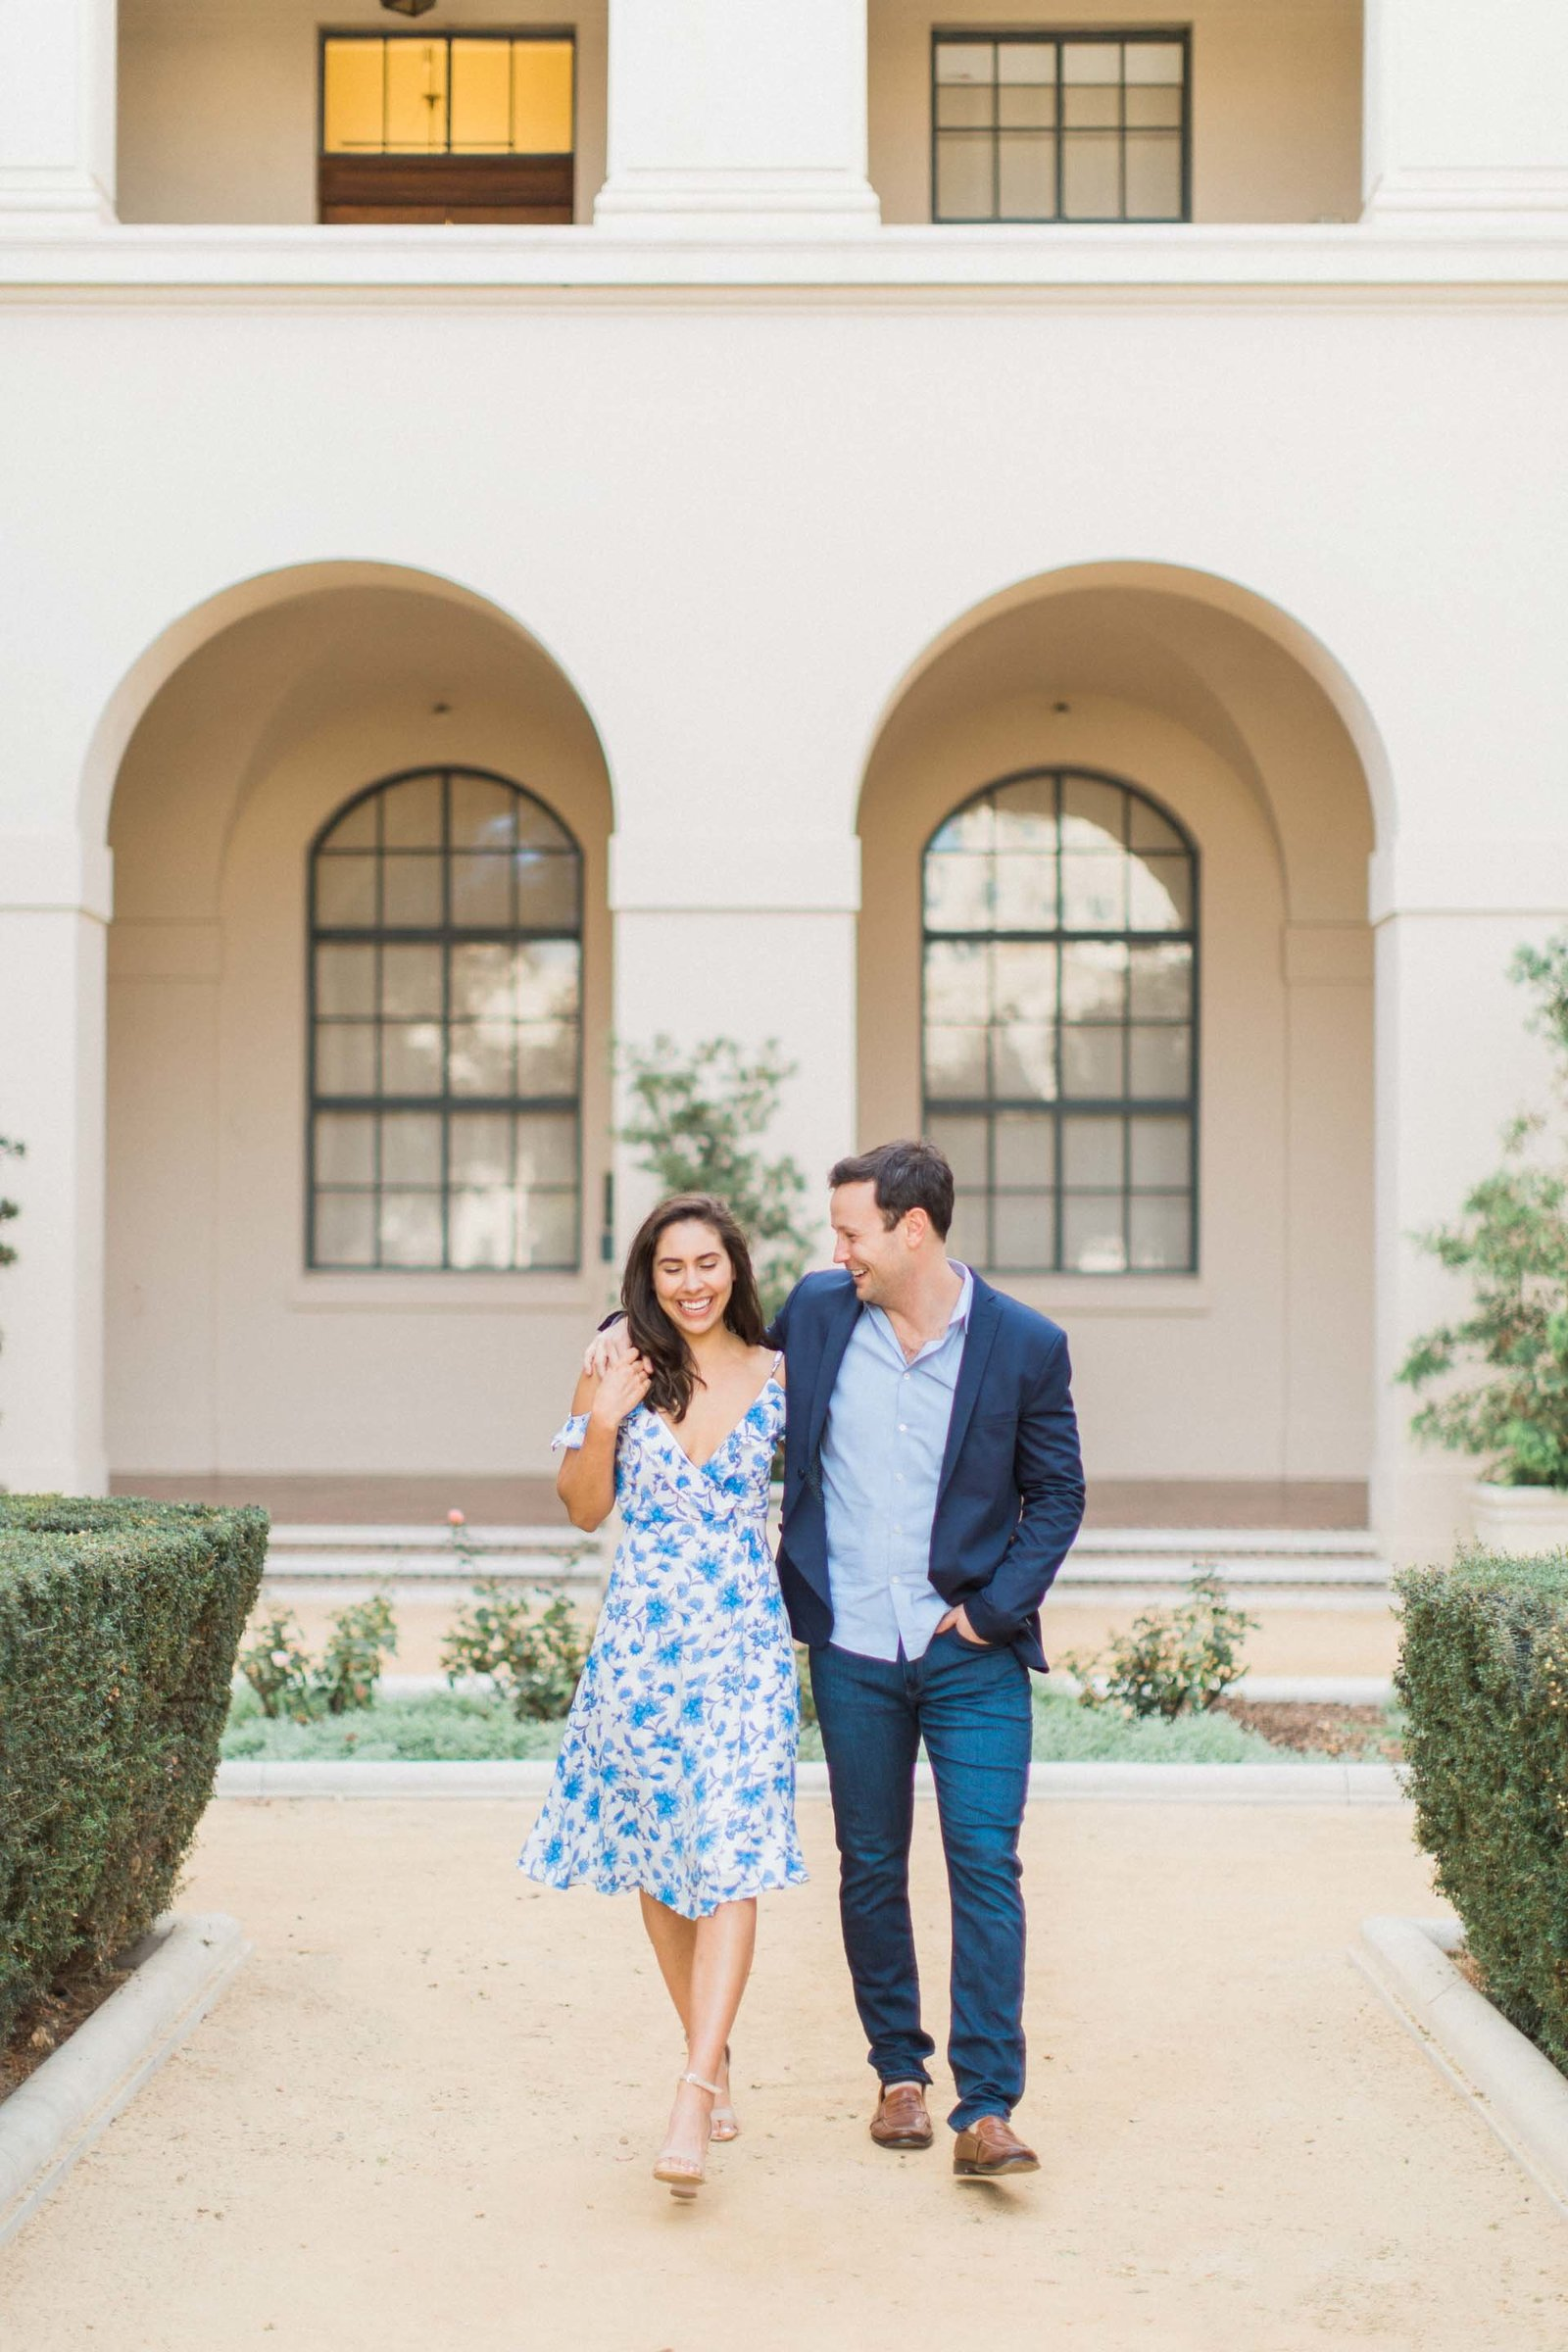 Pasadena-Los-Angeles-Engagement-Photographer-2-DT